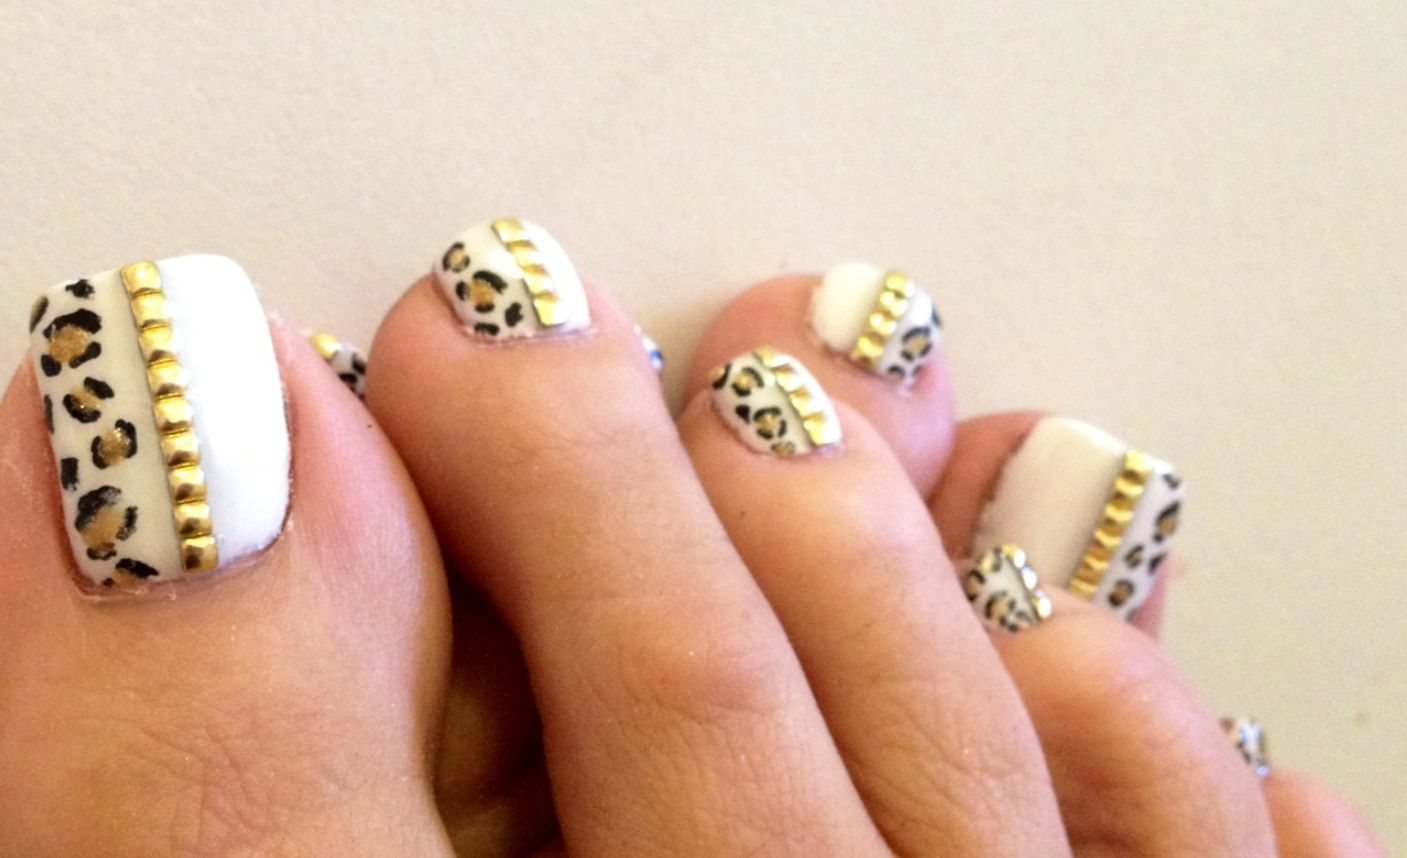 Pin By Adison Waters On Salon Chic Toe Nail Art Toe Nails Toe Nail Designs